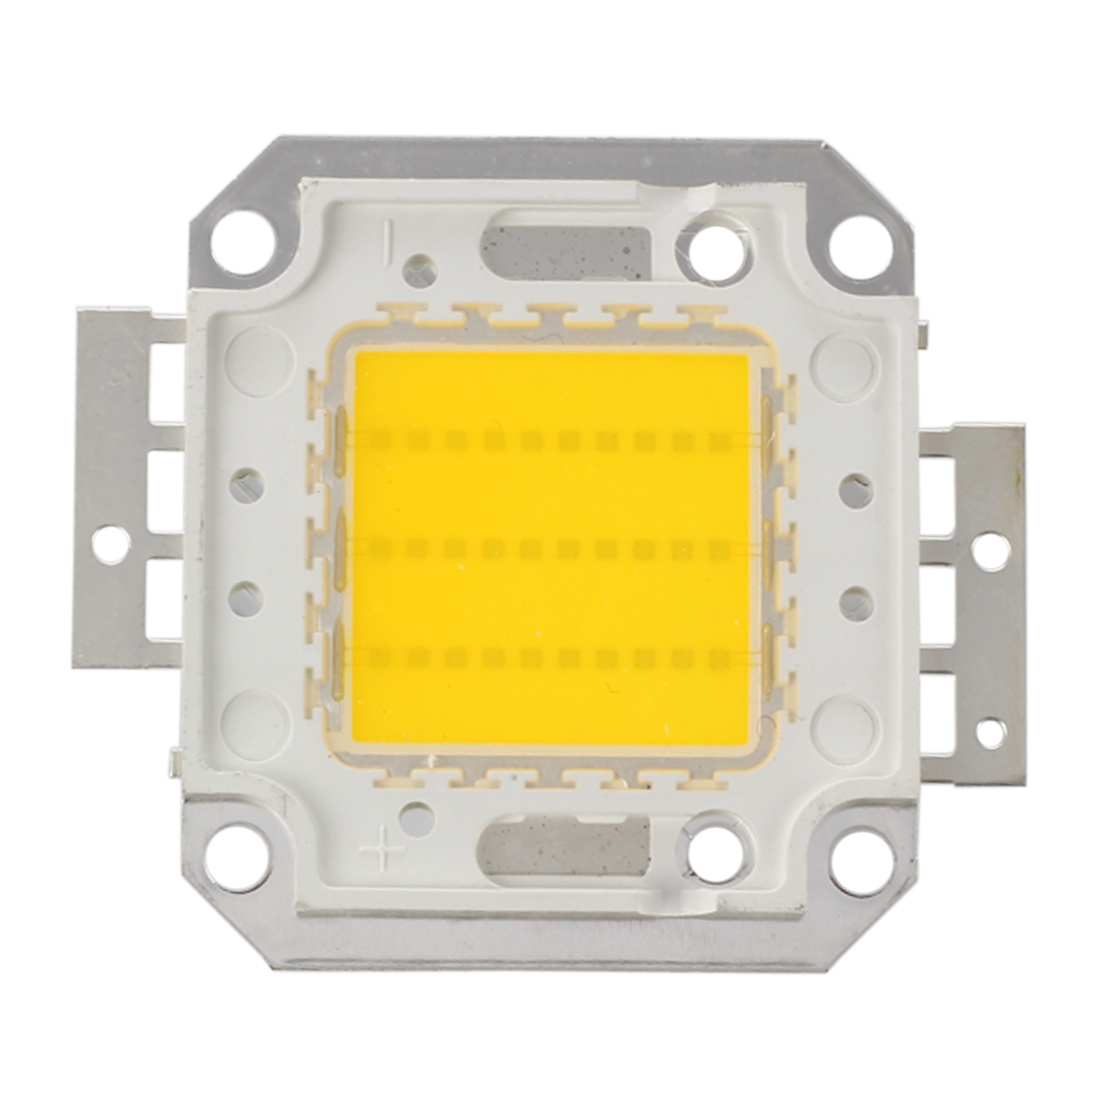 High-power <font><b>30W</b></font> <font><b>LED</b></font> bulb <font><b>lamp</b></font> Warm White DIY 2200LM 3000K image